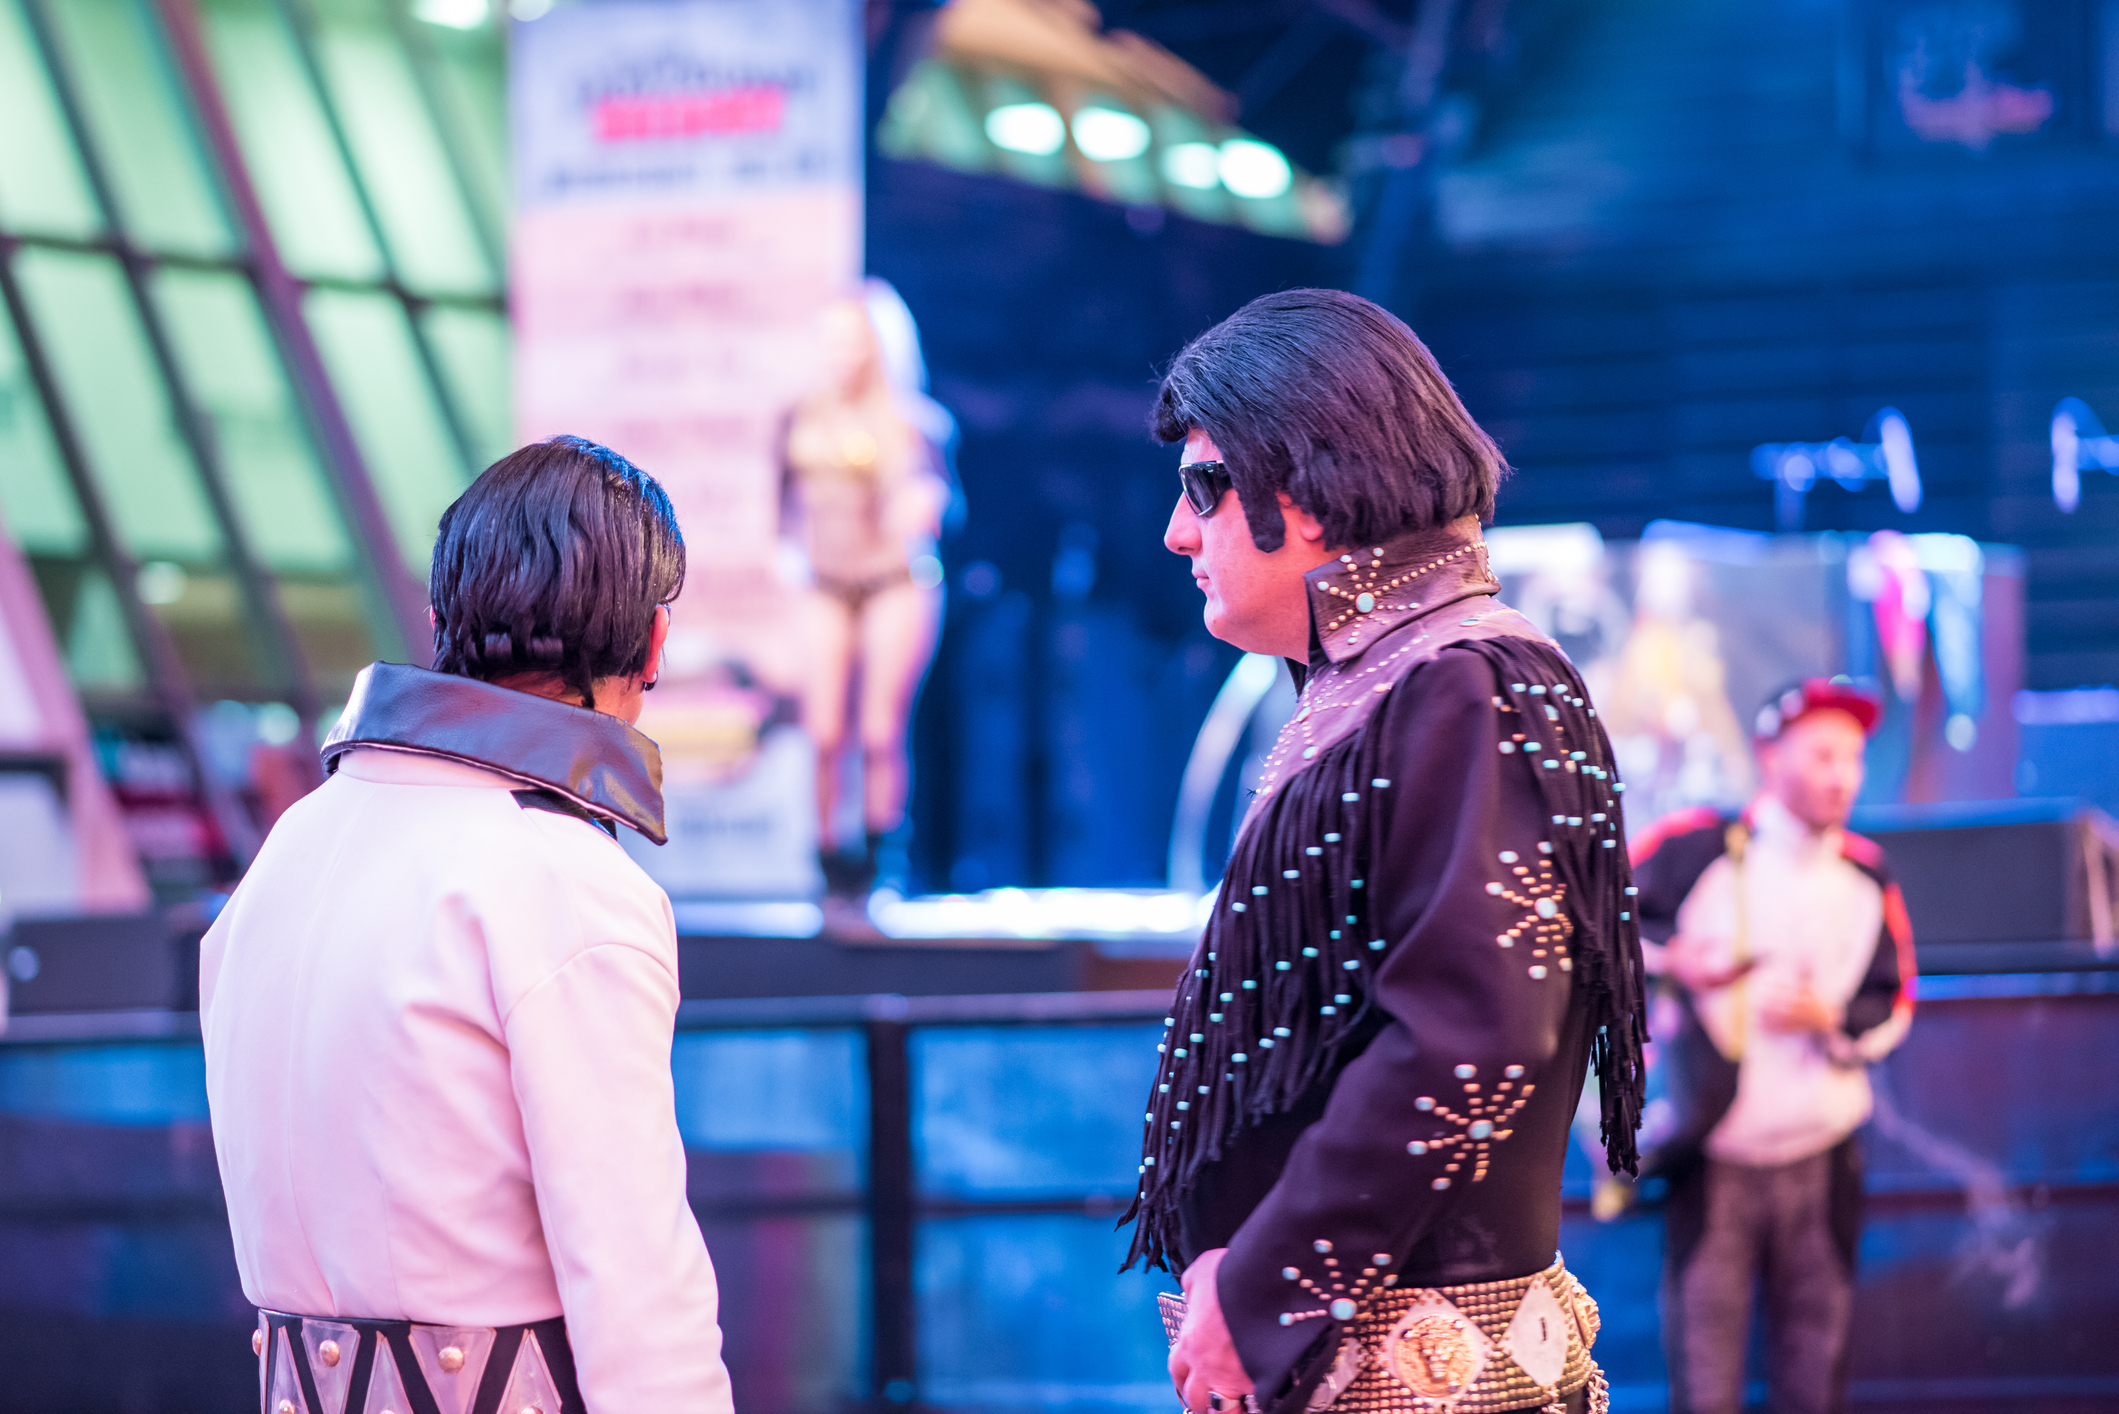 Two Elvis impersonators hanging out at the historic Fremont Street Experience, downtown Las Vegas.